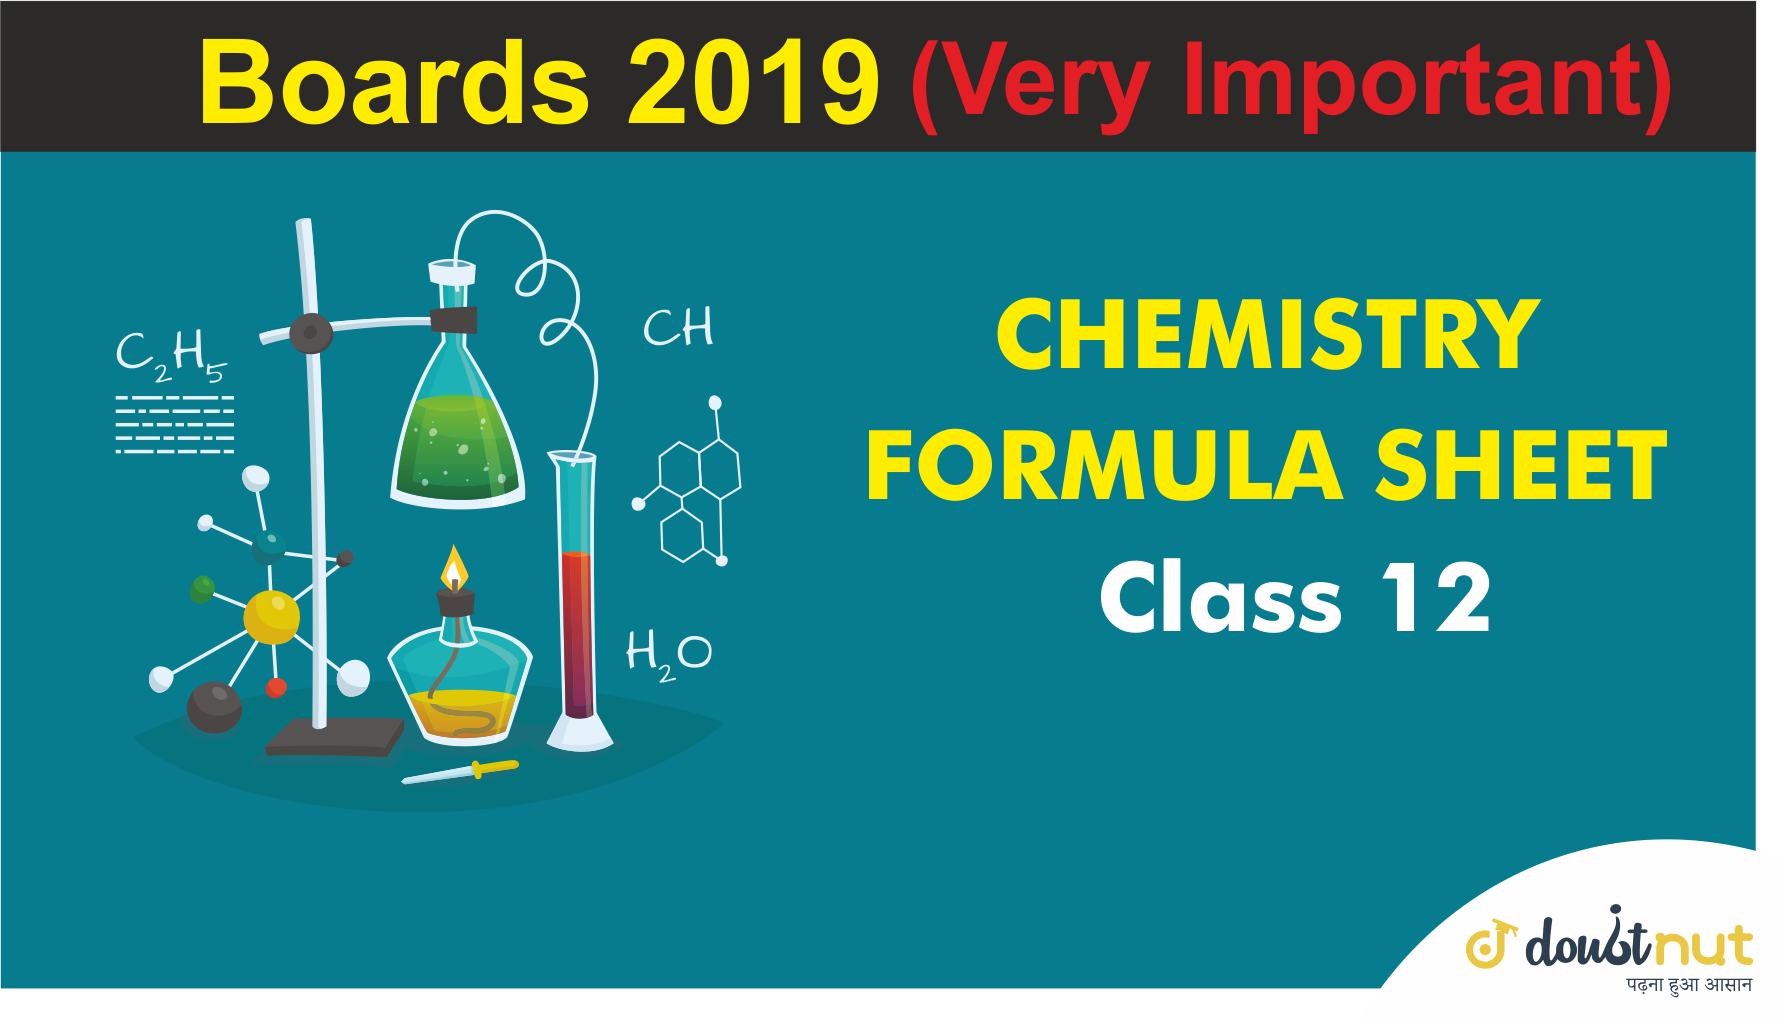 Class 12 Chemistry Revision | Important Reaction and Results For Boards Exam